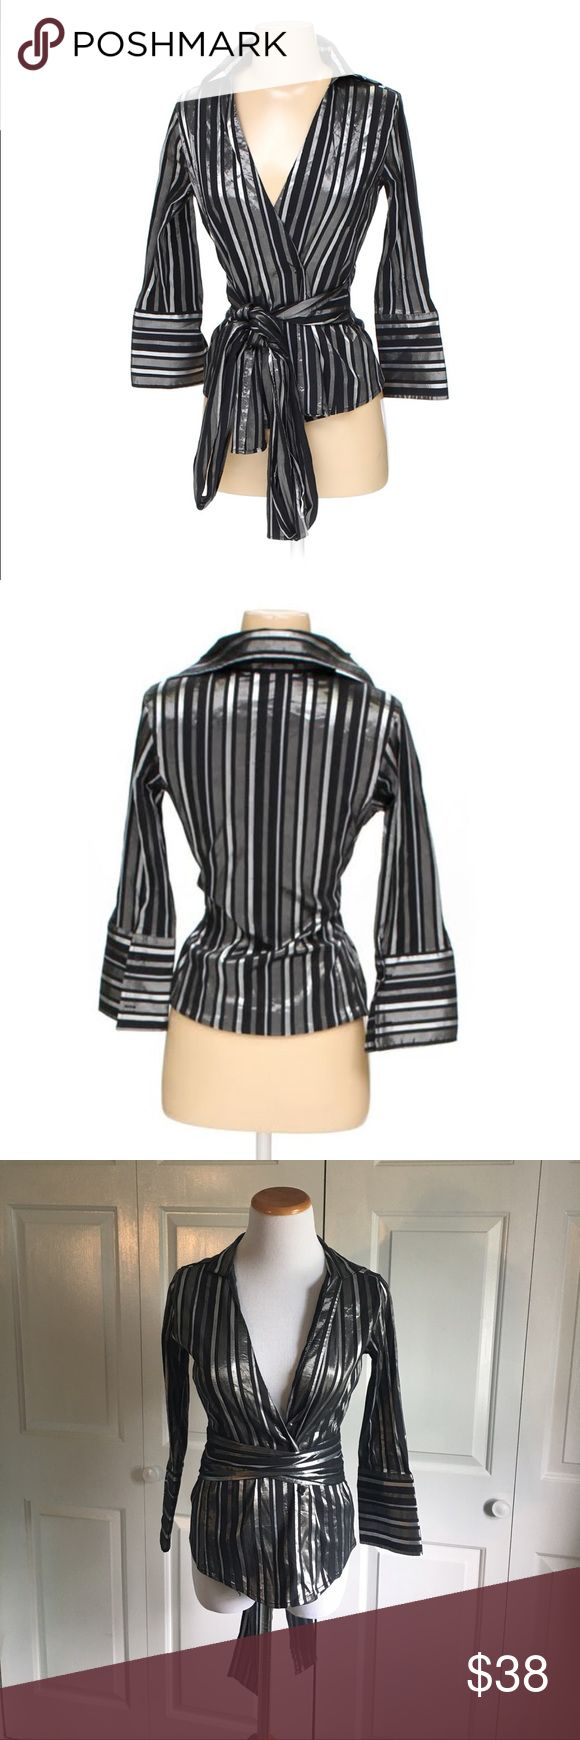 ZARA Wrap Around Tie Blouse Black and metallic silver Blouse with long, adjustable wrap-around tie. Bow can be worn long or short, in the back or in the front. 3/4 sleeve. Excellent condition, no flaws. Zara Tops Blouses